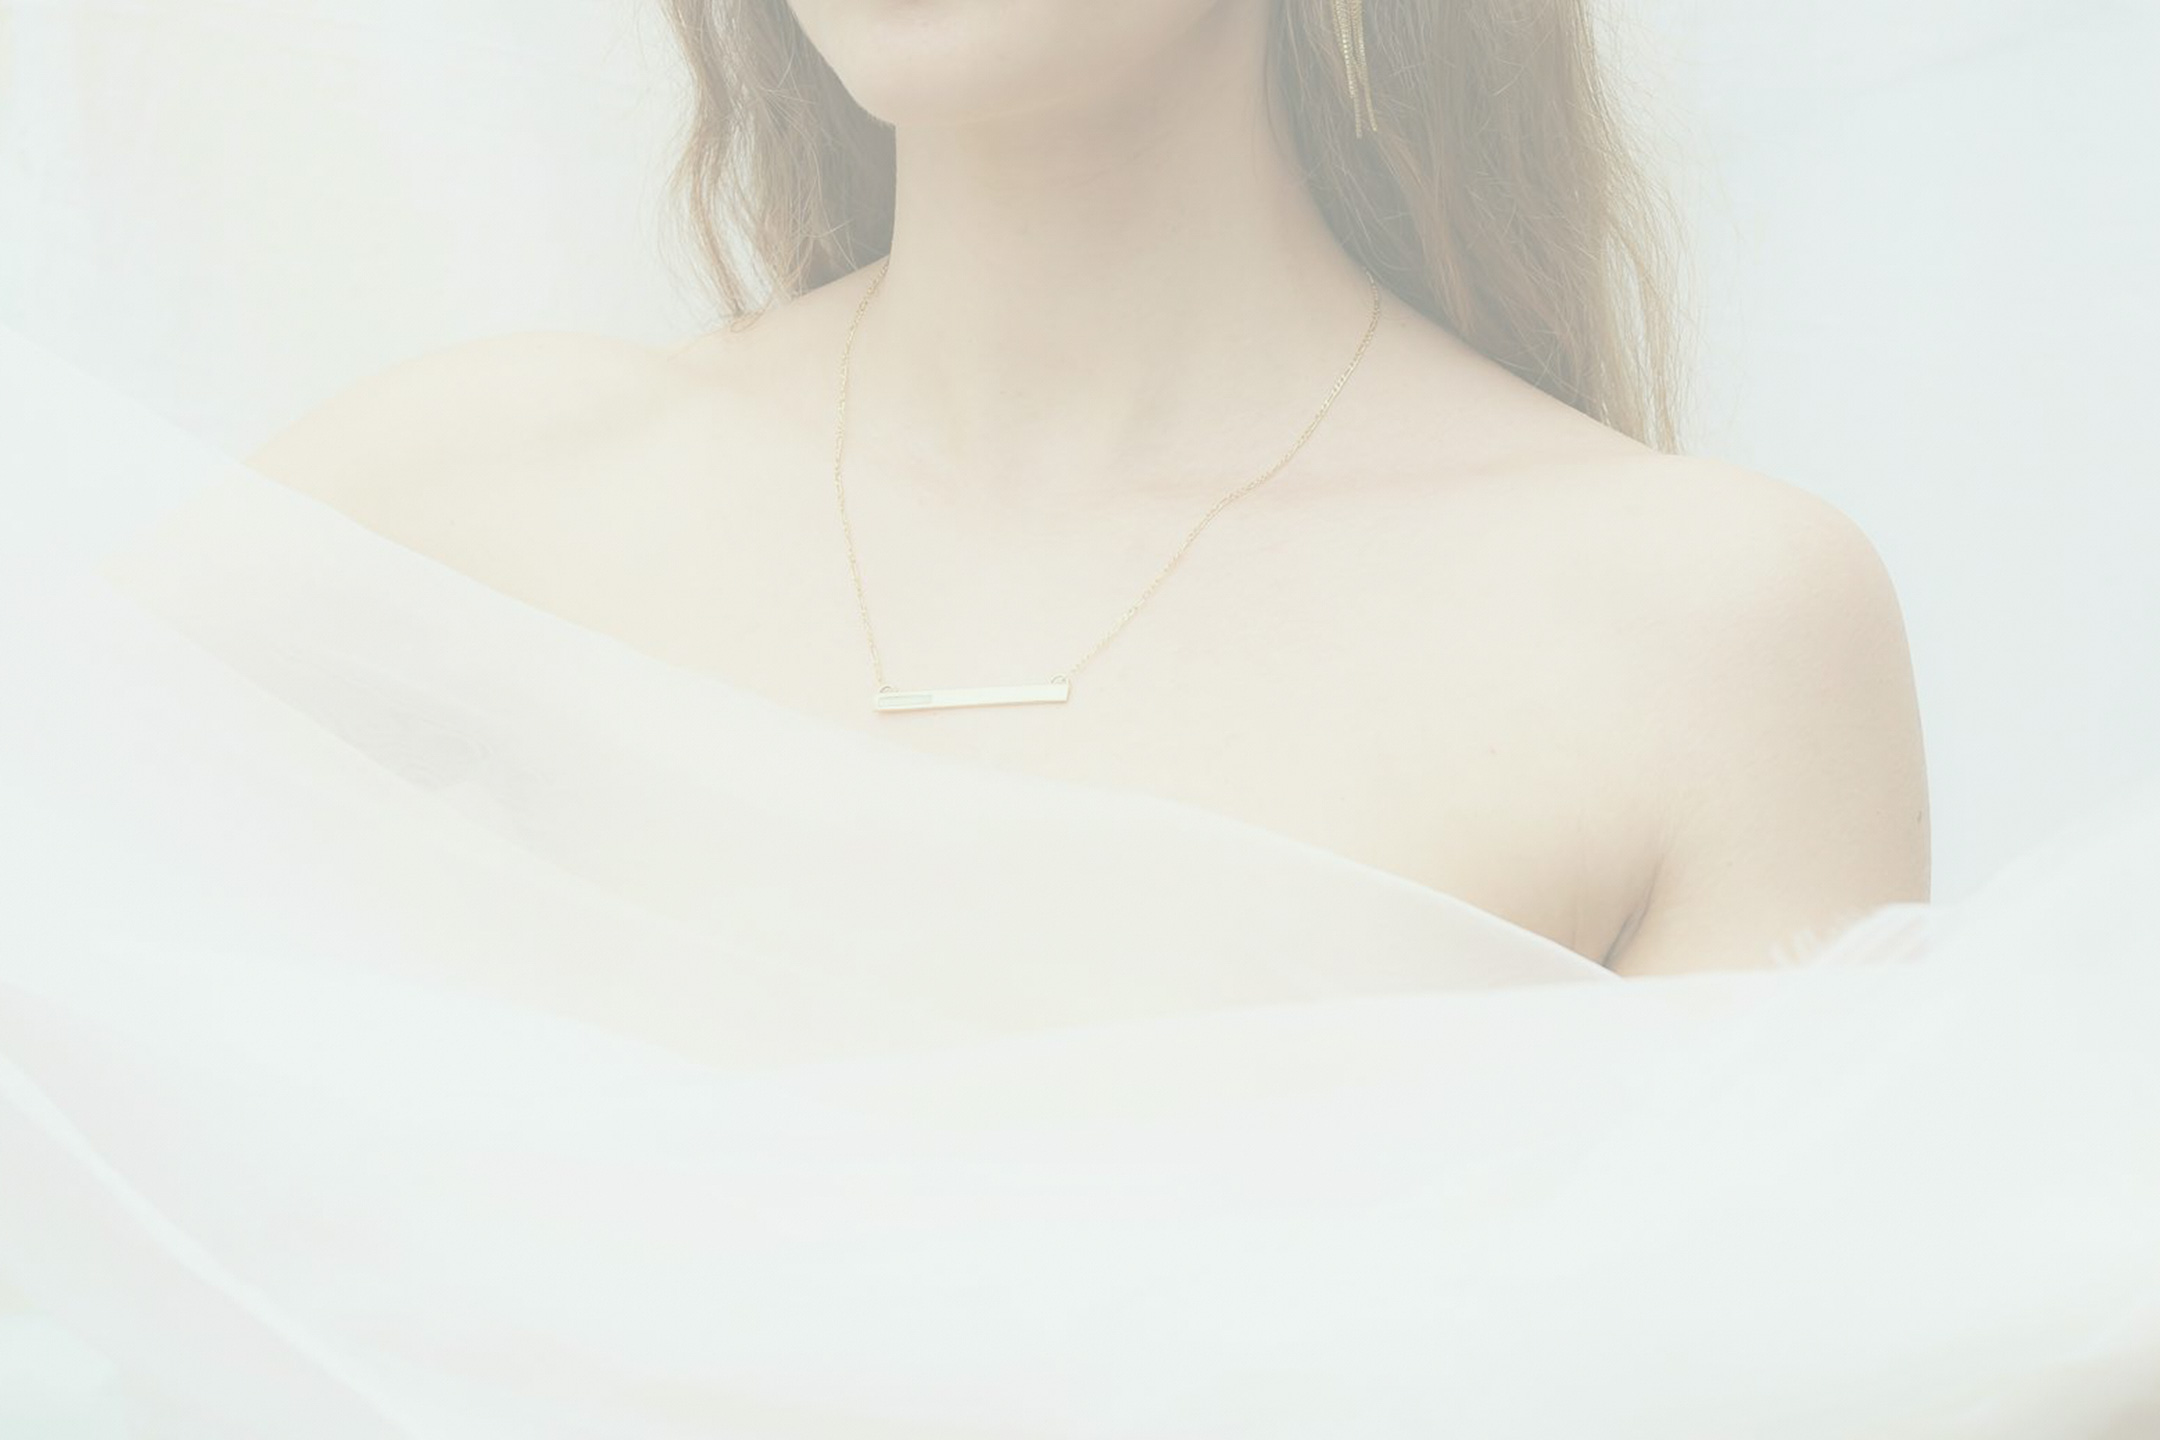 Beautiful chain dangling from a woman's neck